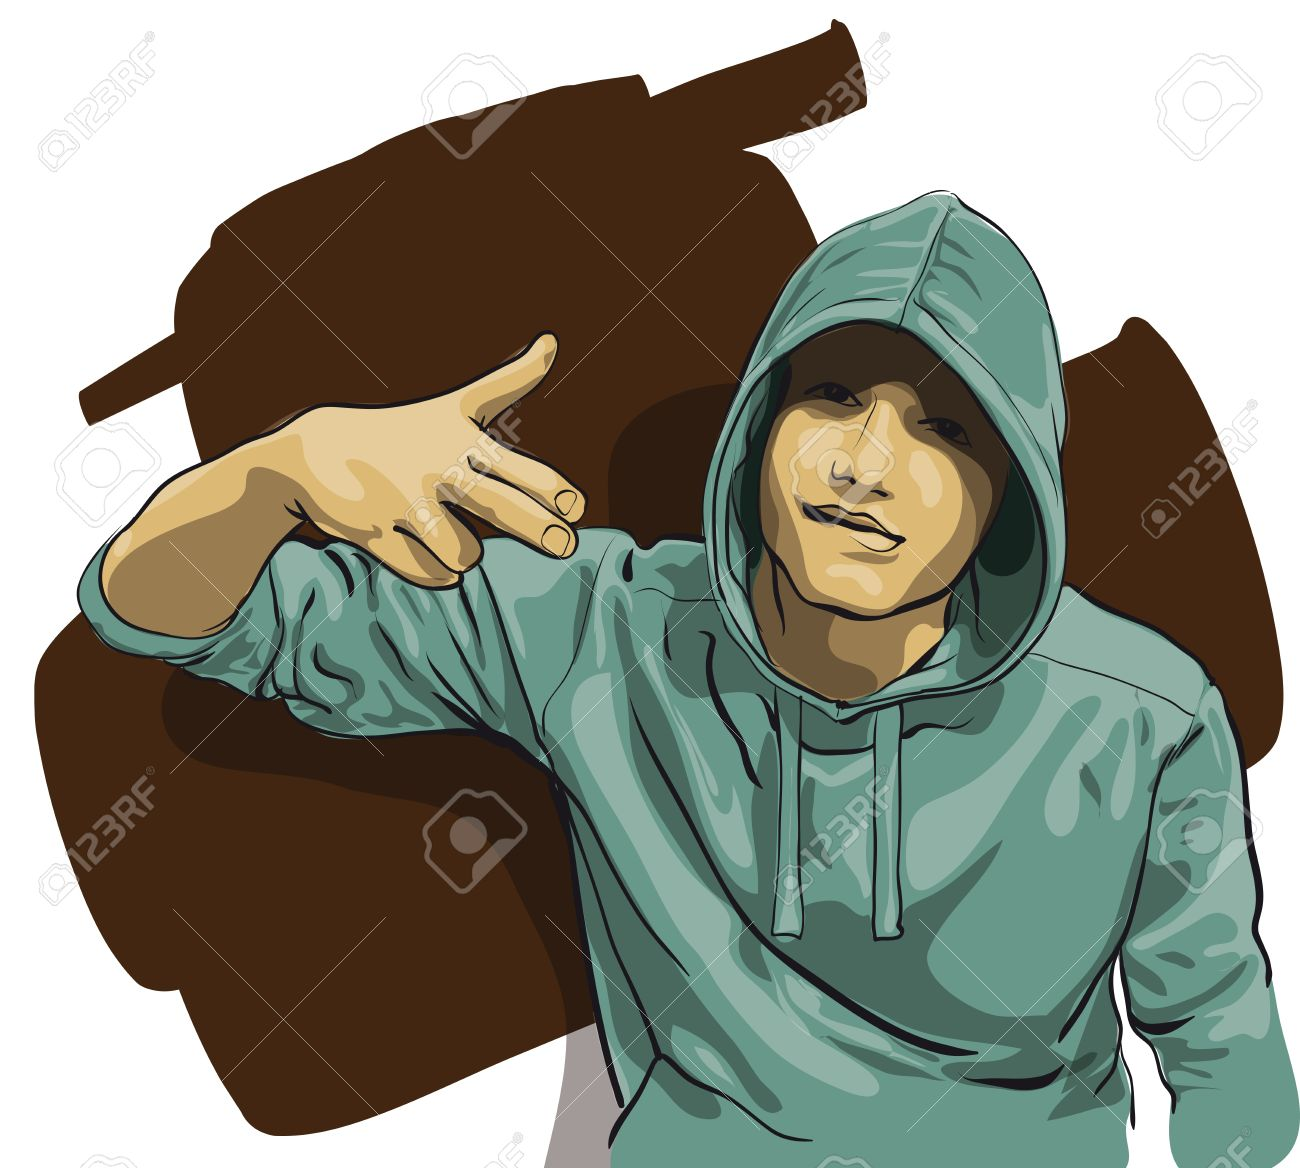 some guy with a face covered by a hood   Vector Illustratio Stock Vector - 12484403